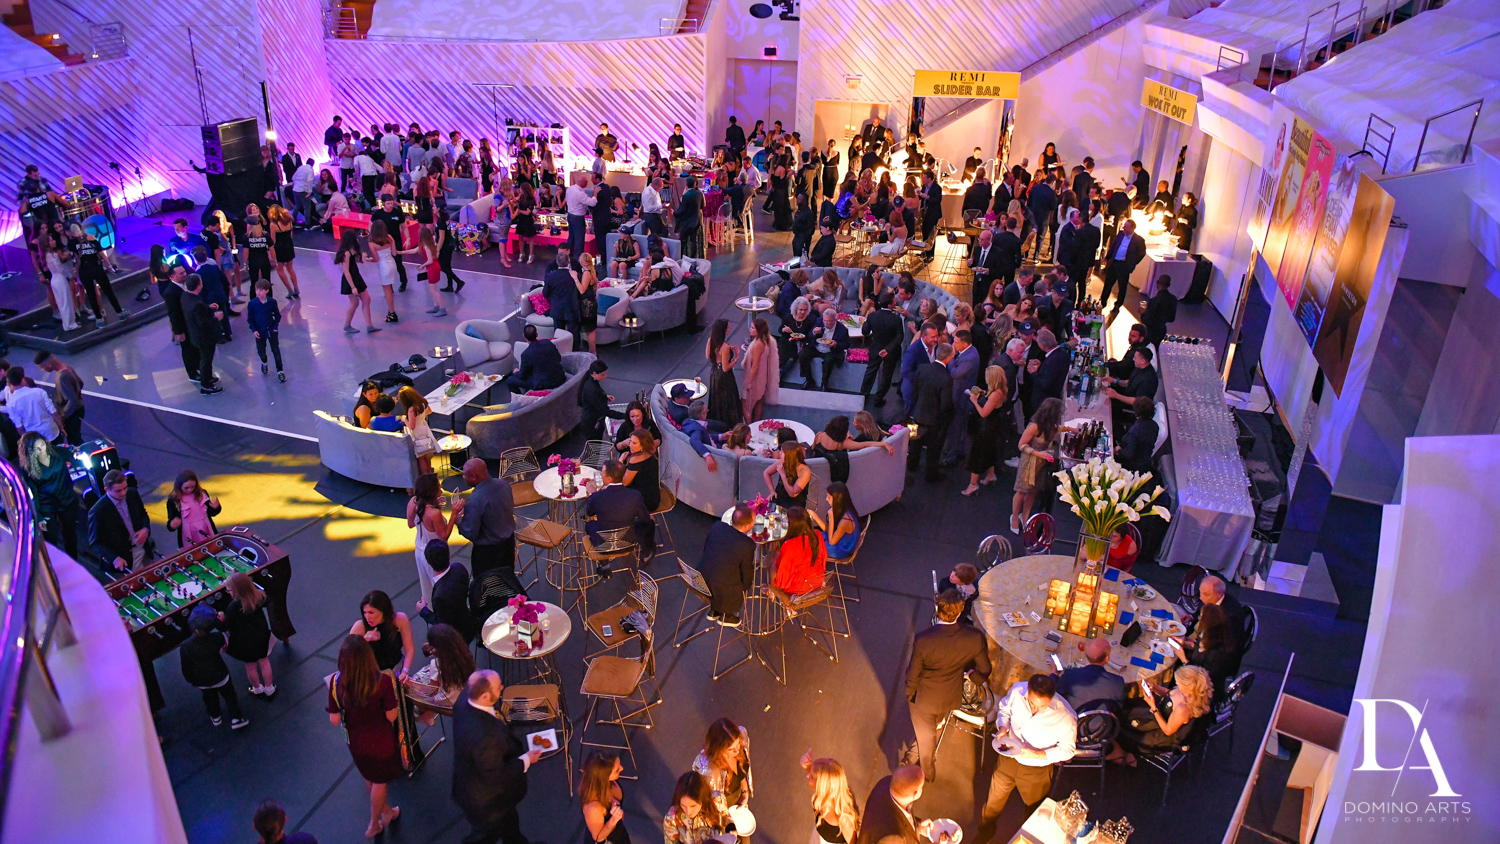 party at Luxurious Broadway Theme Bat Mitzvah at New World Symphony in Miami Beach by Domino Arts Photography